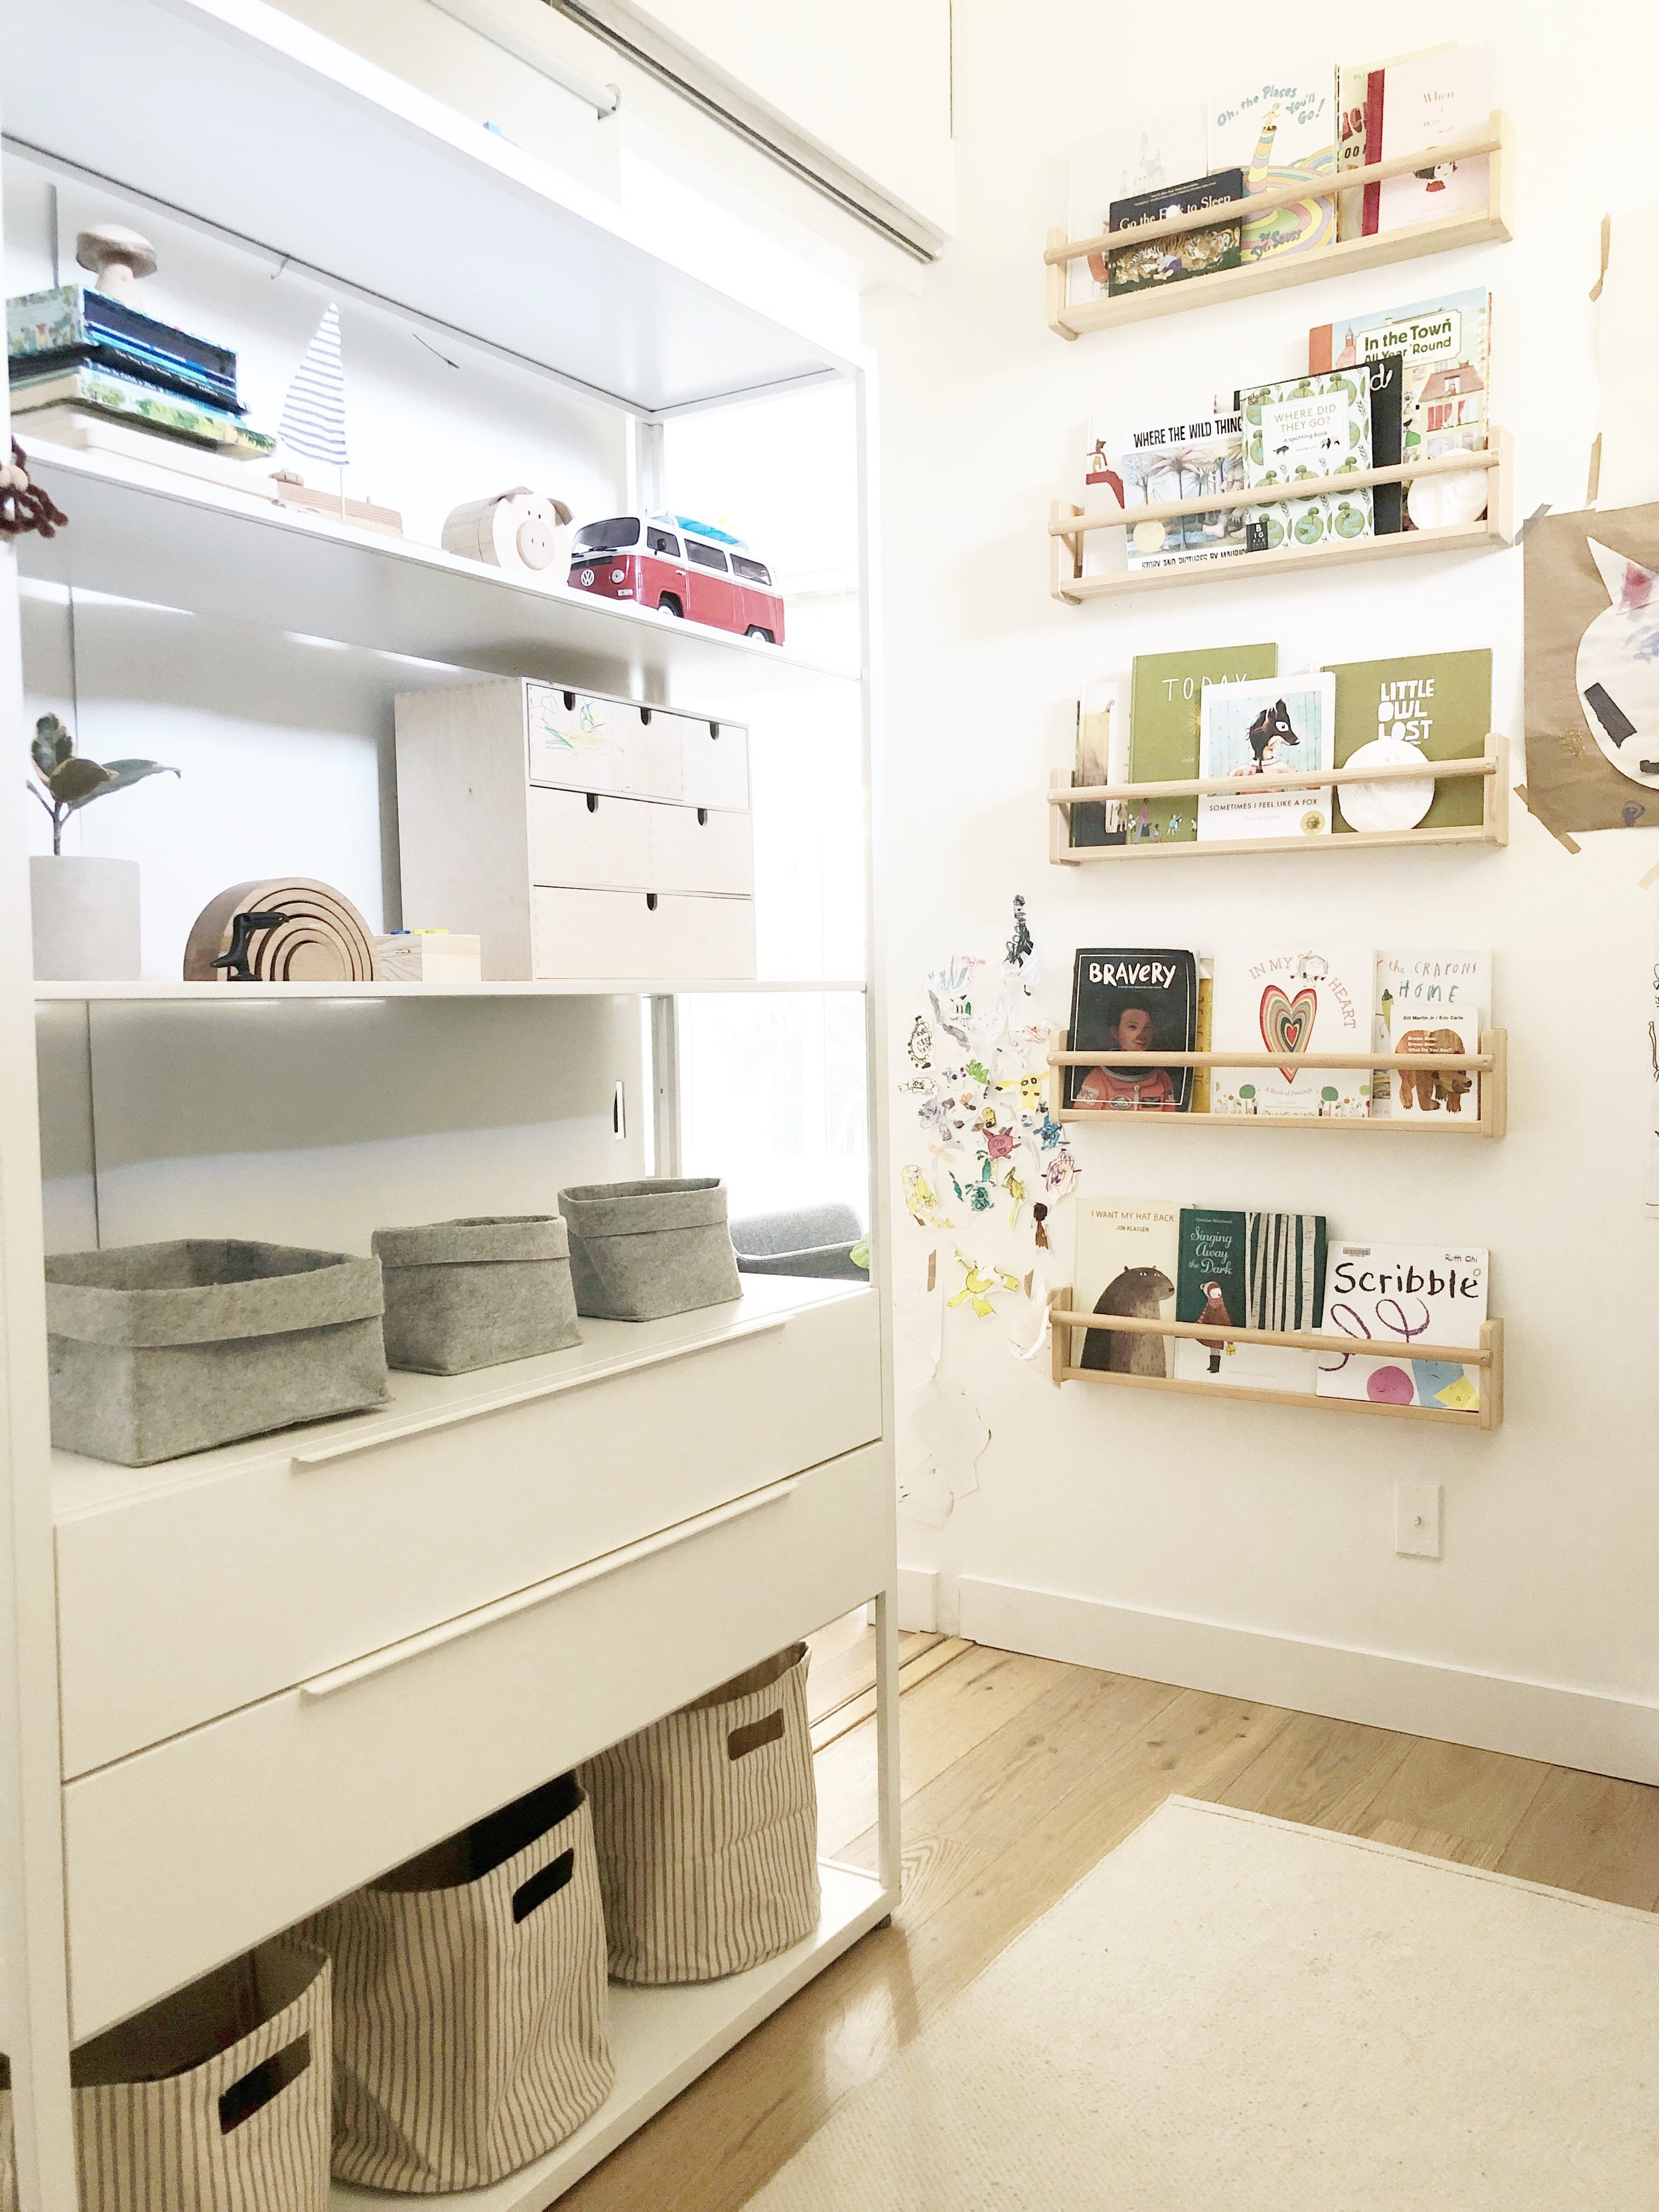 Toy Storage and Organization in a Small space